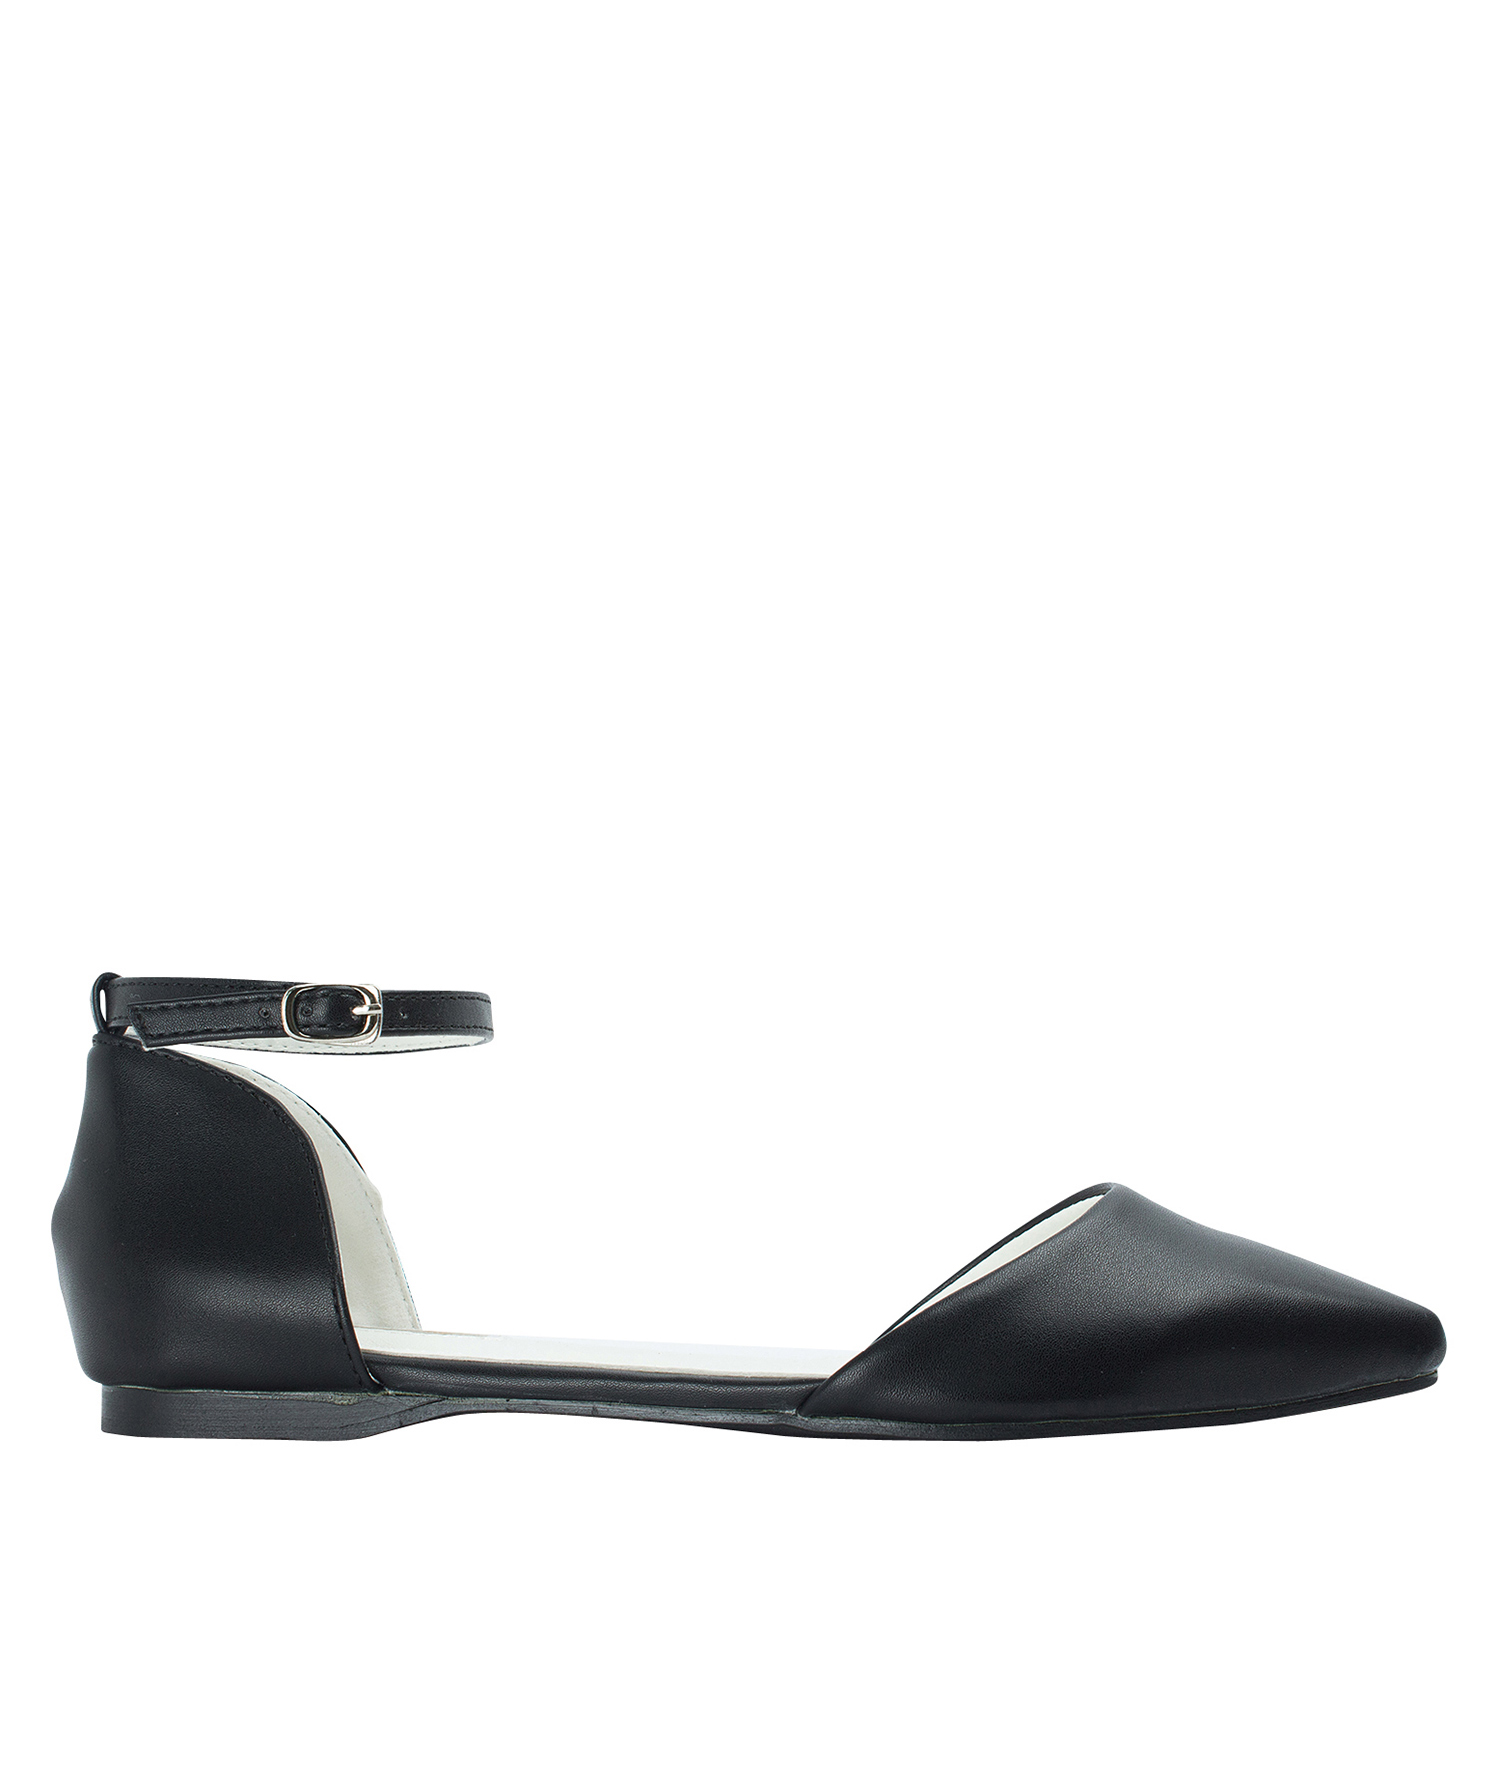 AnnaKastle Womens Pointed Toe Ankle-Strap d'Orsay Flats Black